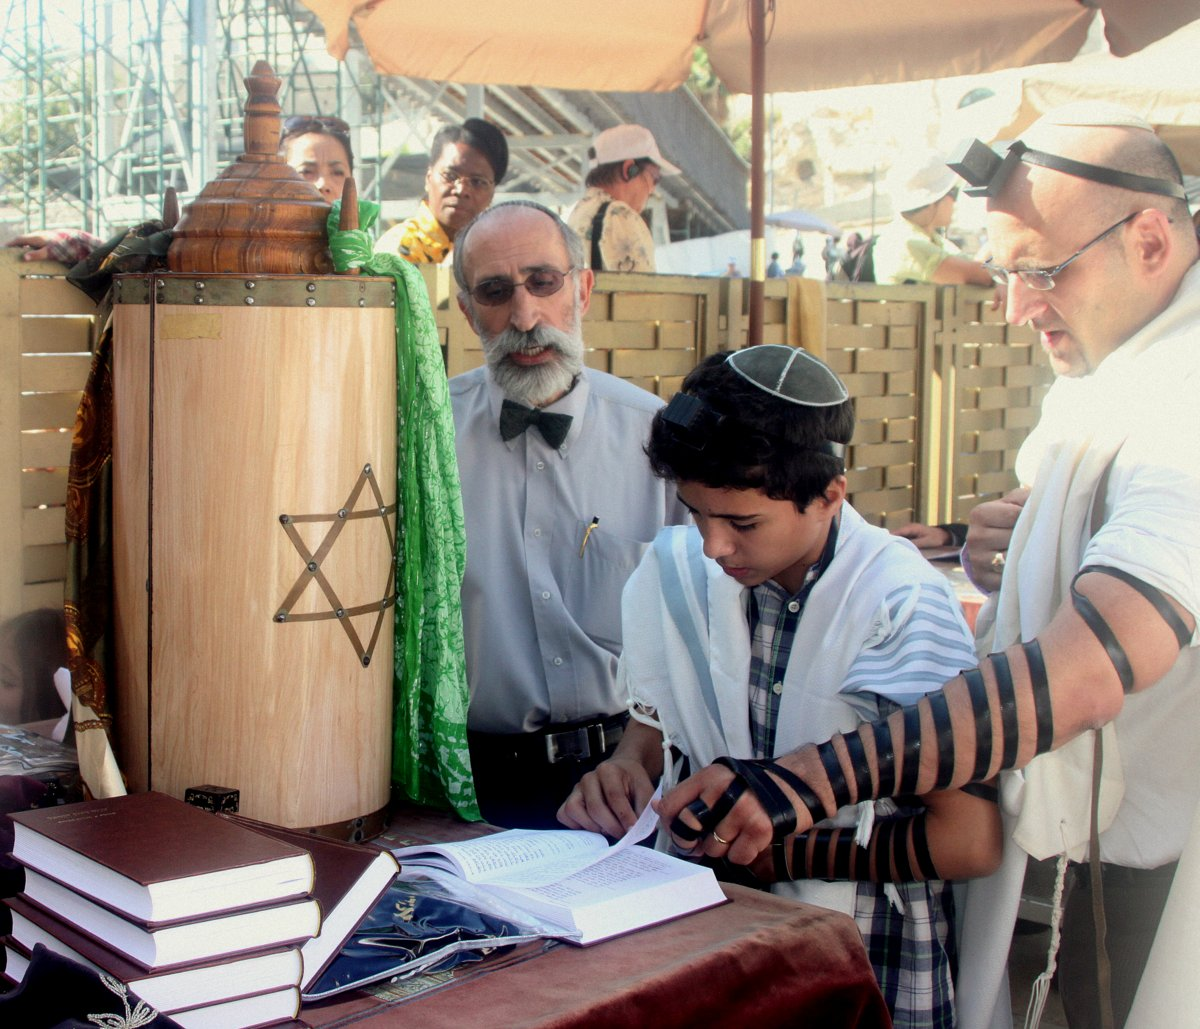 Click photo to download. Caption: A bar mitzvah boy reads his Torah portion at the Western Wall. Credit: Peter van der Sluijs/Wikimedia Commons.